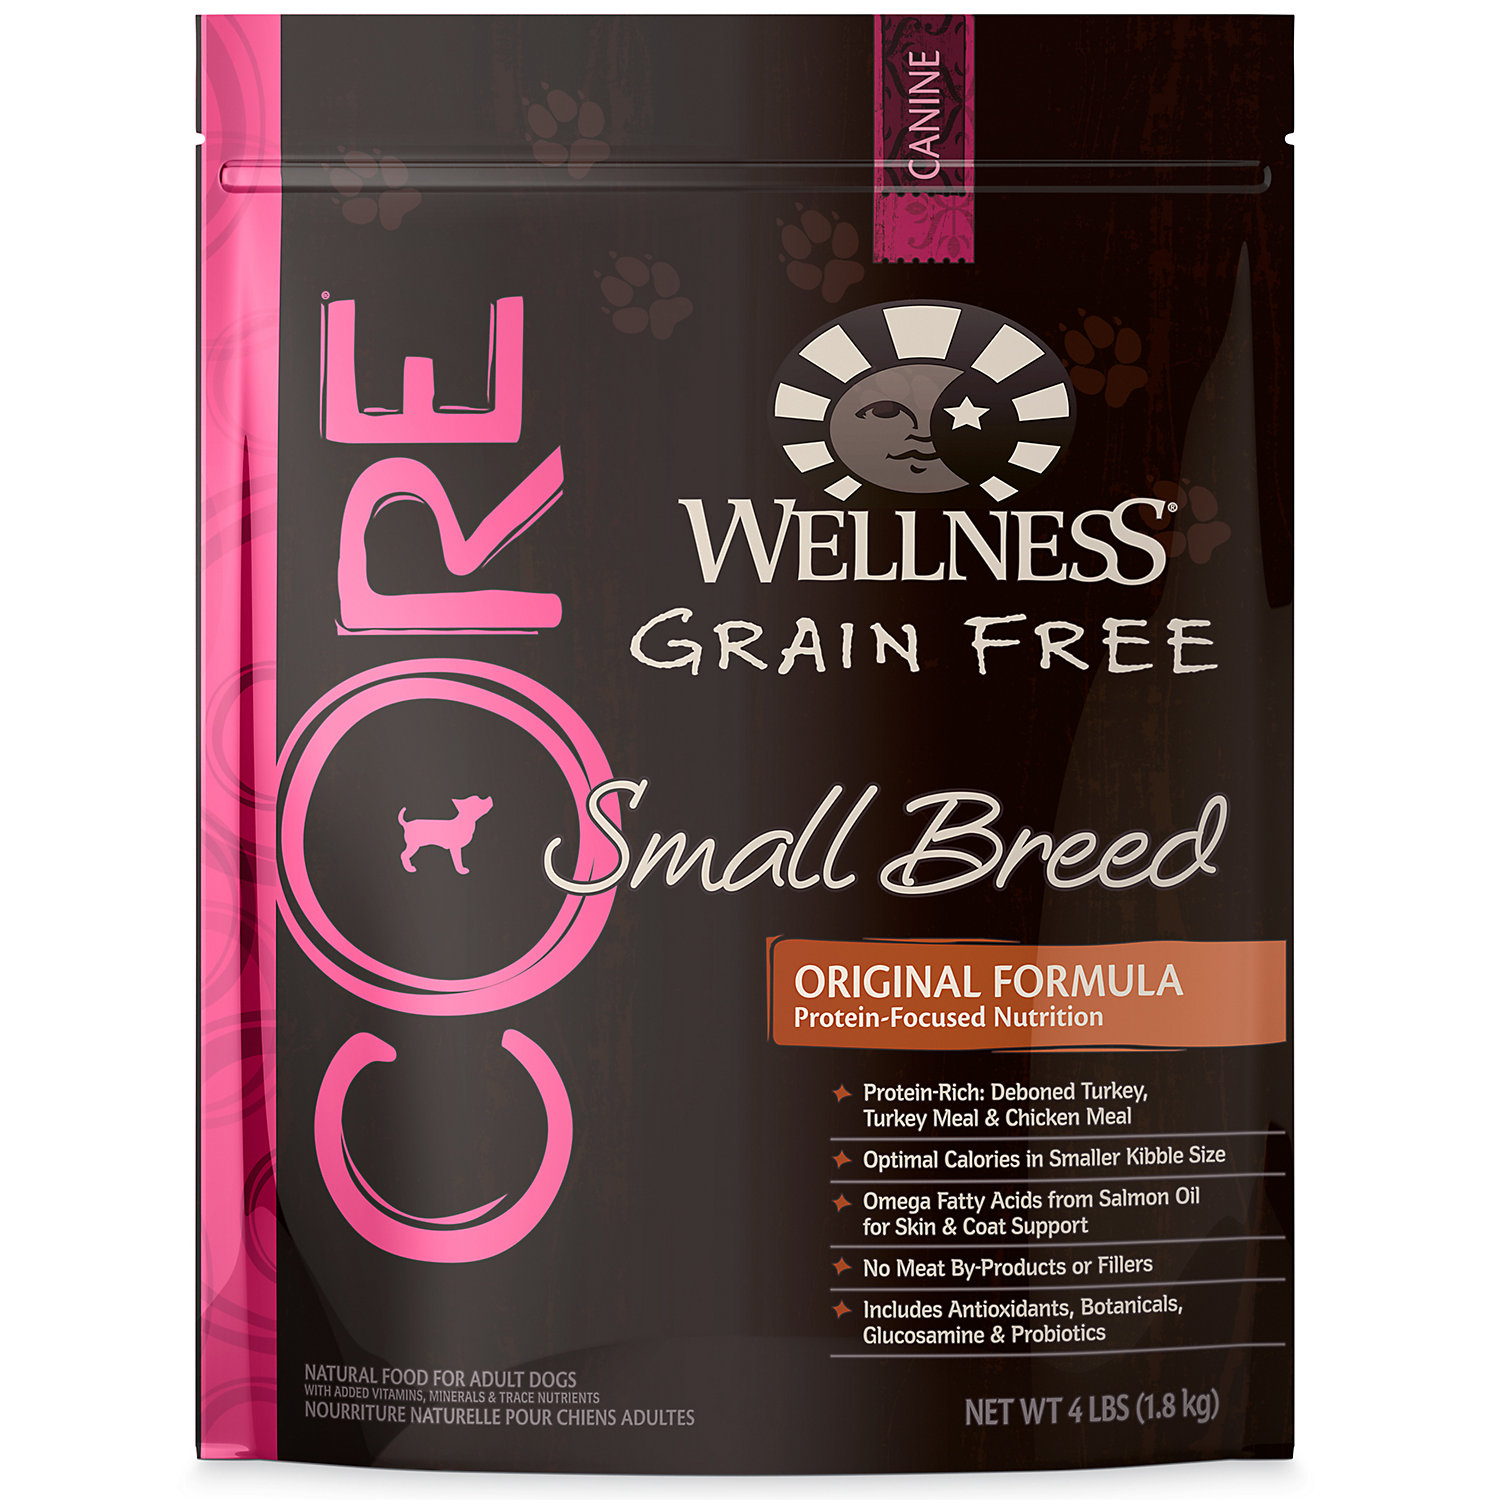 Wellness CORE Small Breed Adult Dog Food, 4 lbs.